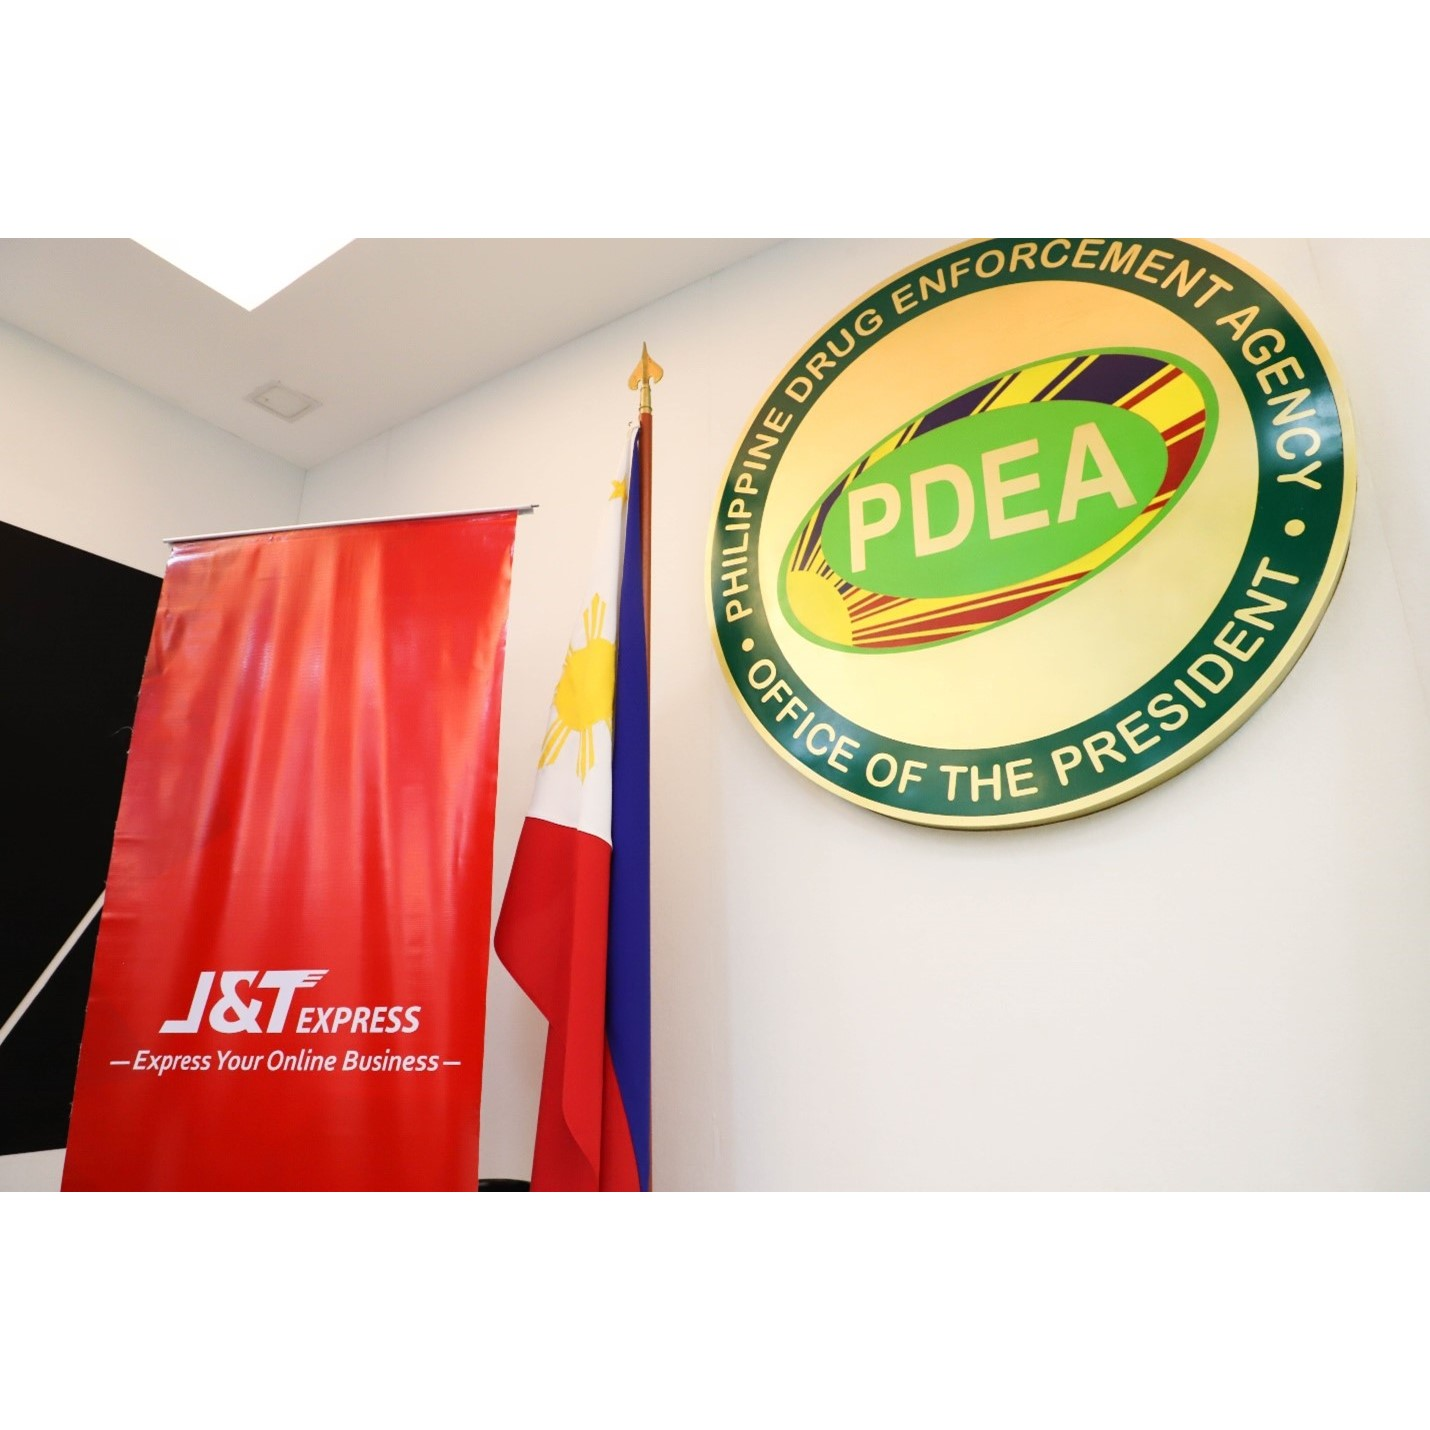 J&T Express and PDEA partner to safeguard logistics and protect SME customers